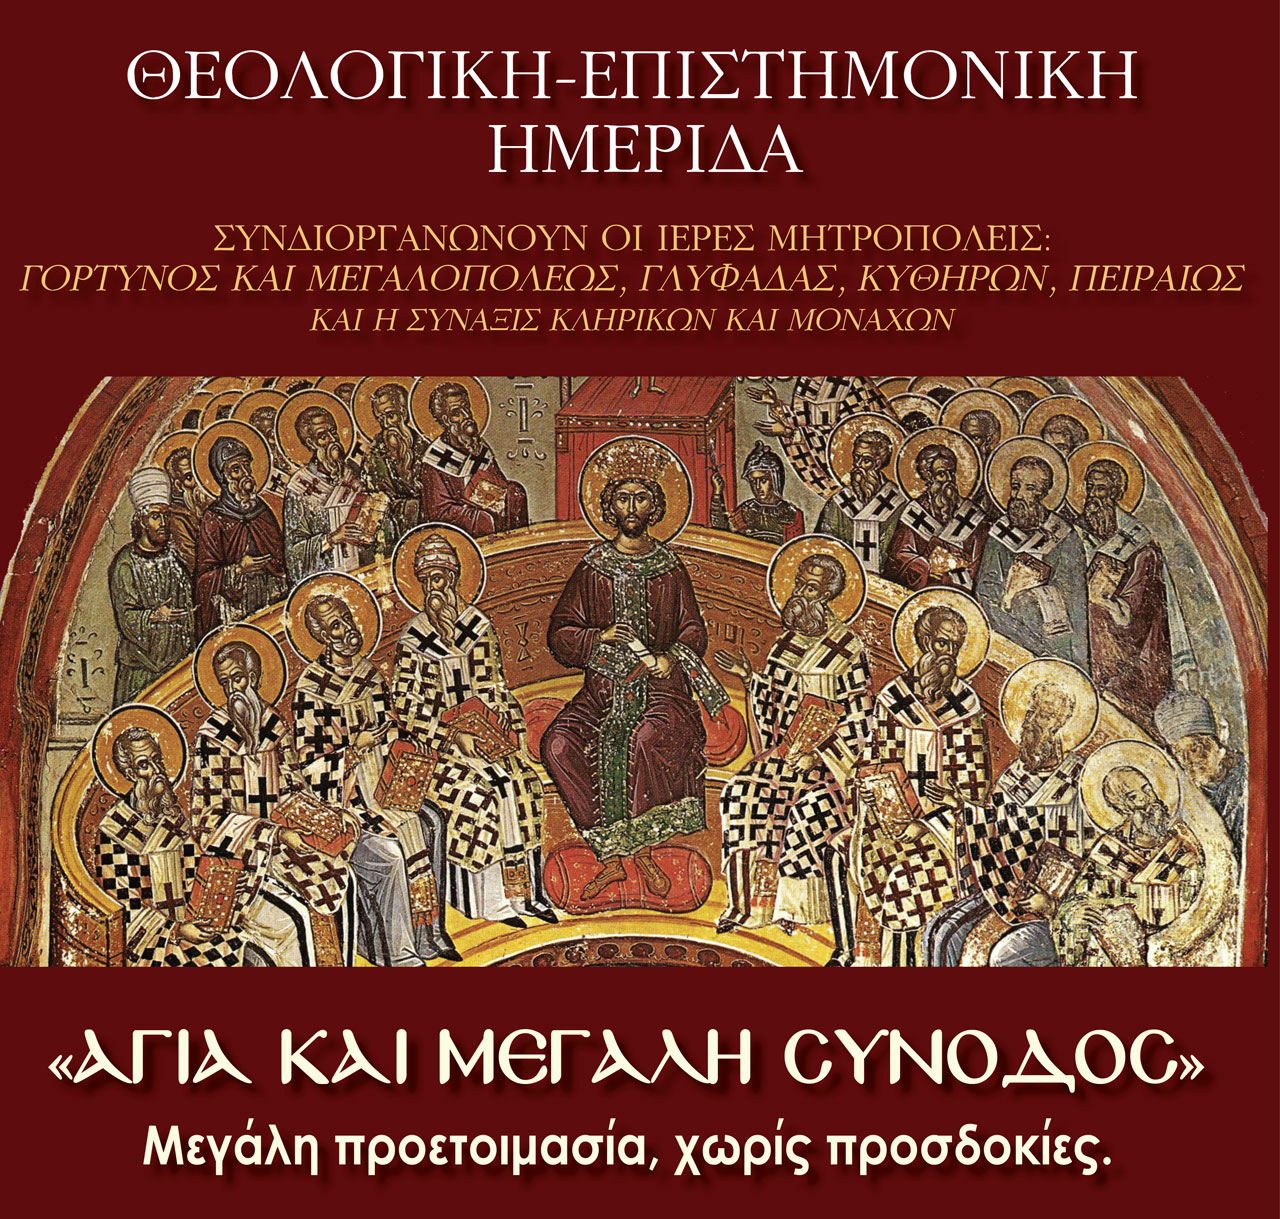 http://www.romfea.gr/images/article-images/2016/03/romfea/arxiepiskopos_prosfiges/synedrio1.jpg